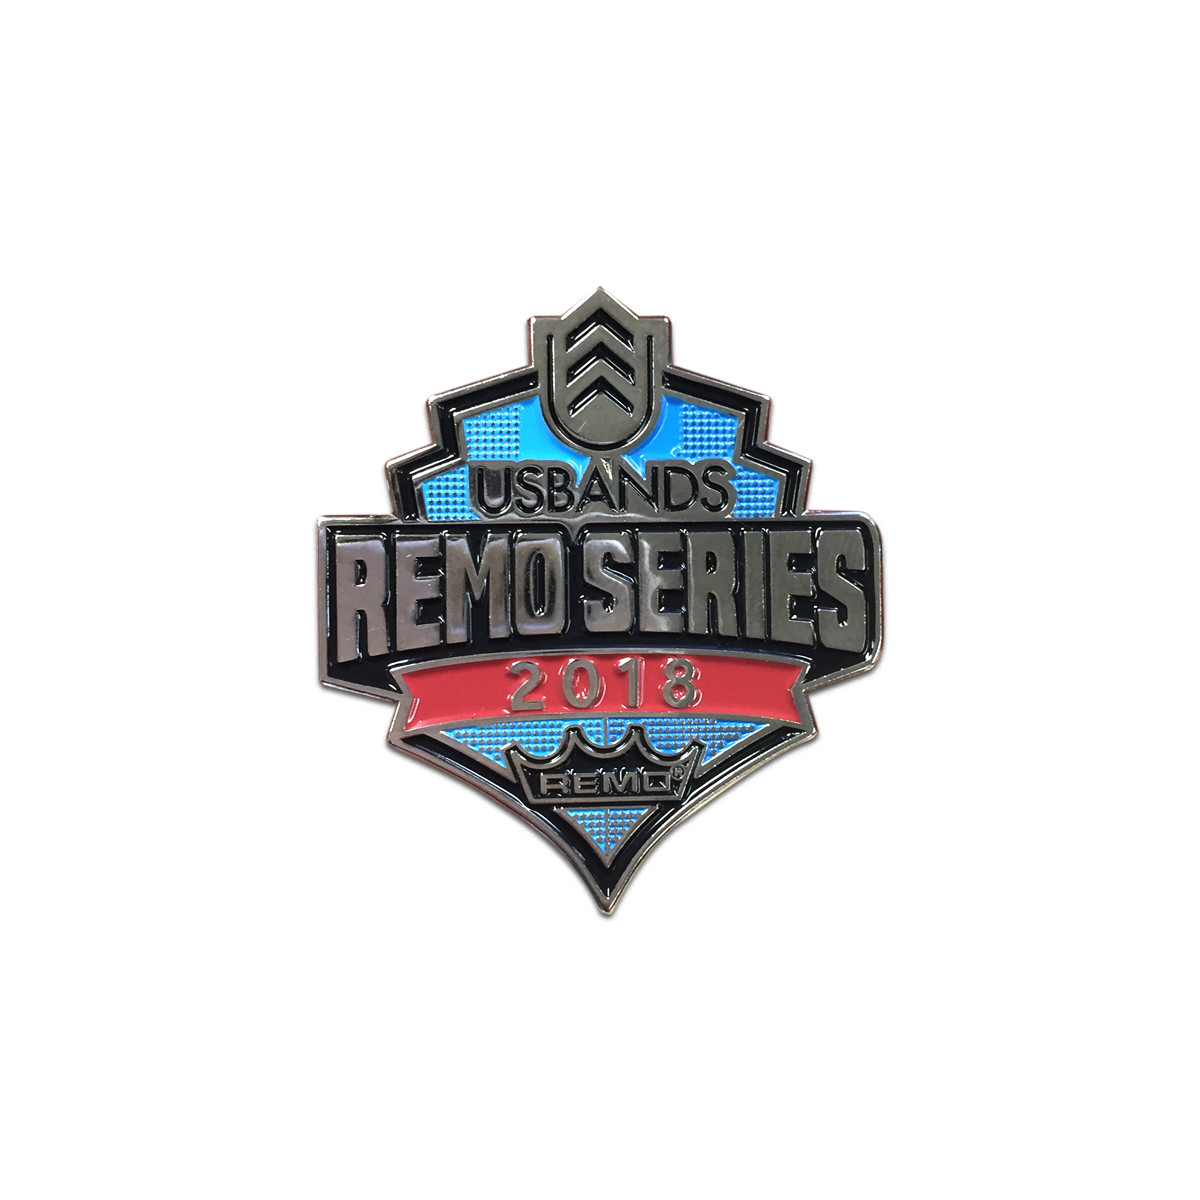 2018 USBands REMO Series Event Pin